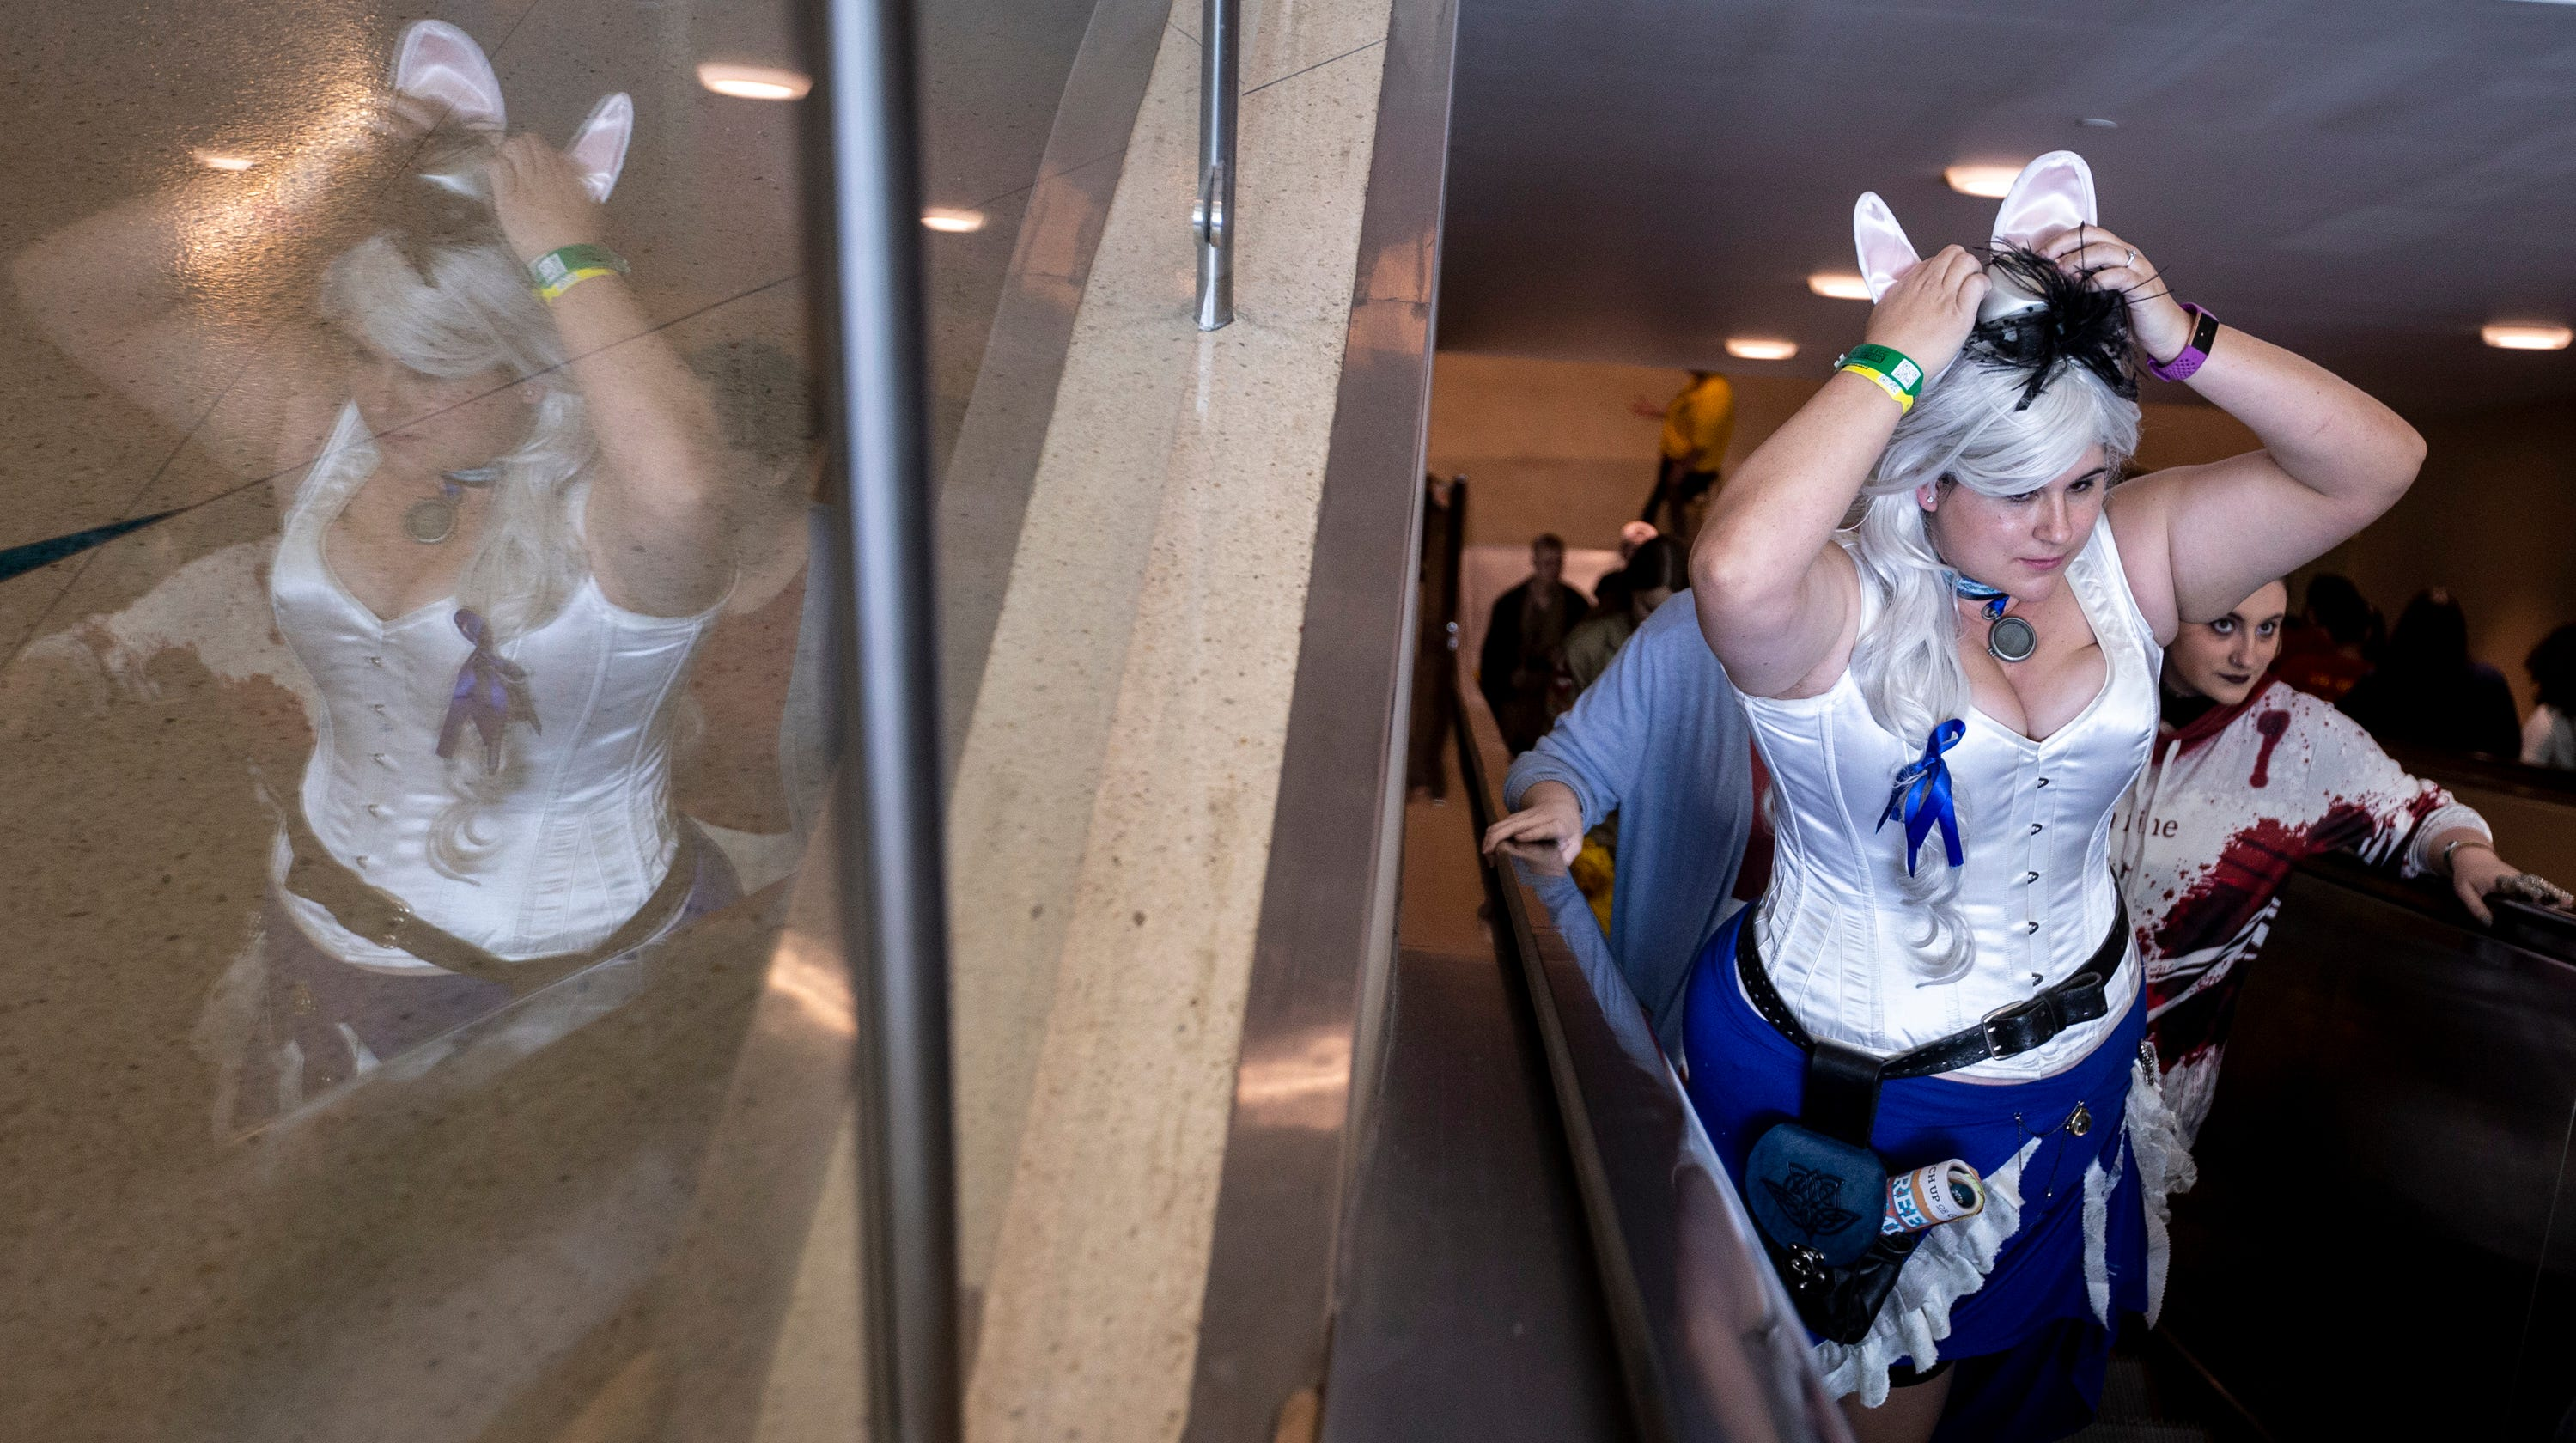 Allyx Blakesley rides an escalator during Day 1 of Phoenix Fan Fusion on May 23, 2019, at the Phoenix Convention Center.